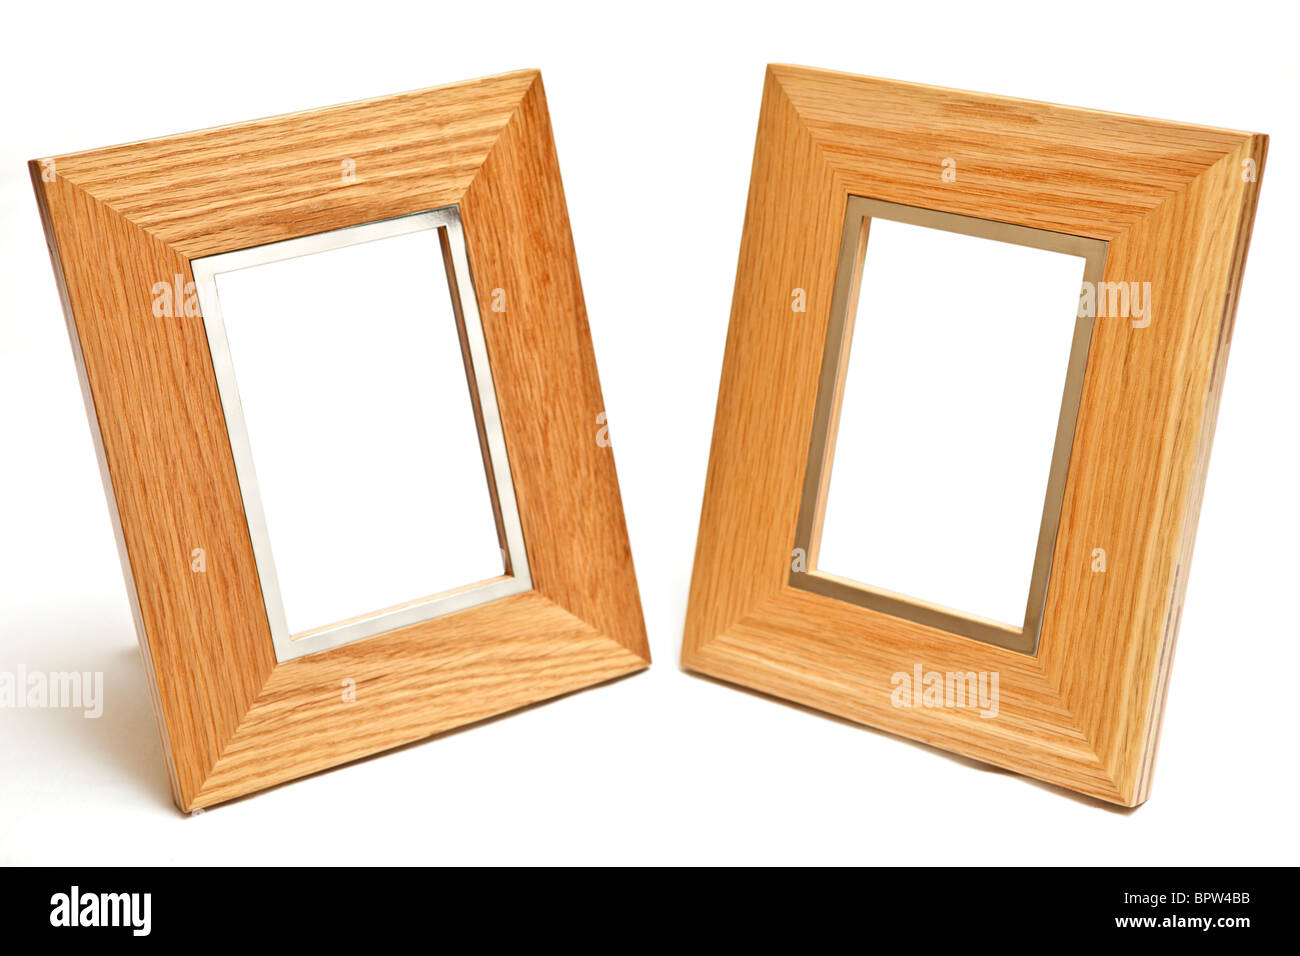 modern wood picture frames. Modern Wooden Frames Isolated On White - Stock Image Modern Wood Picture X